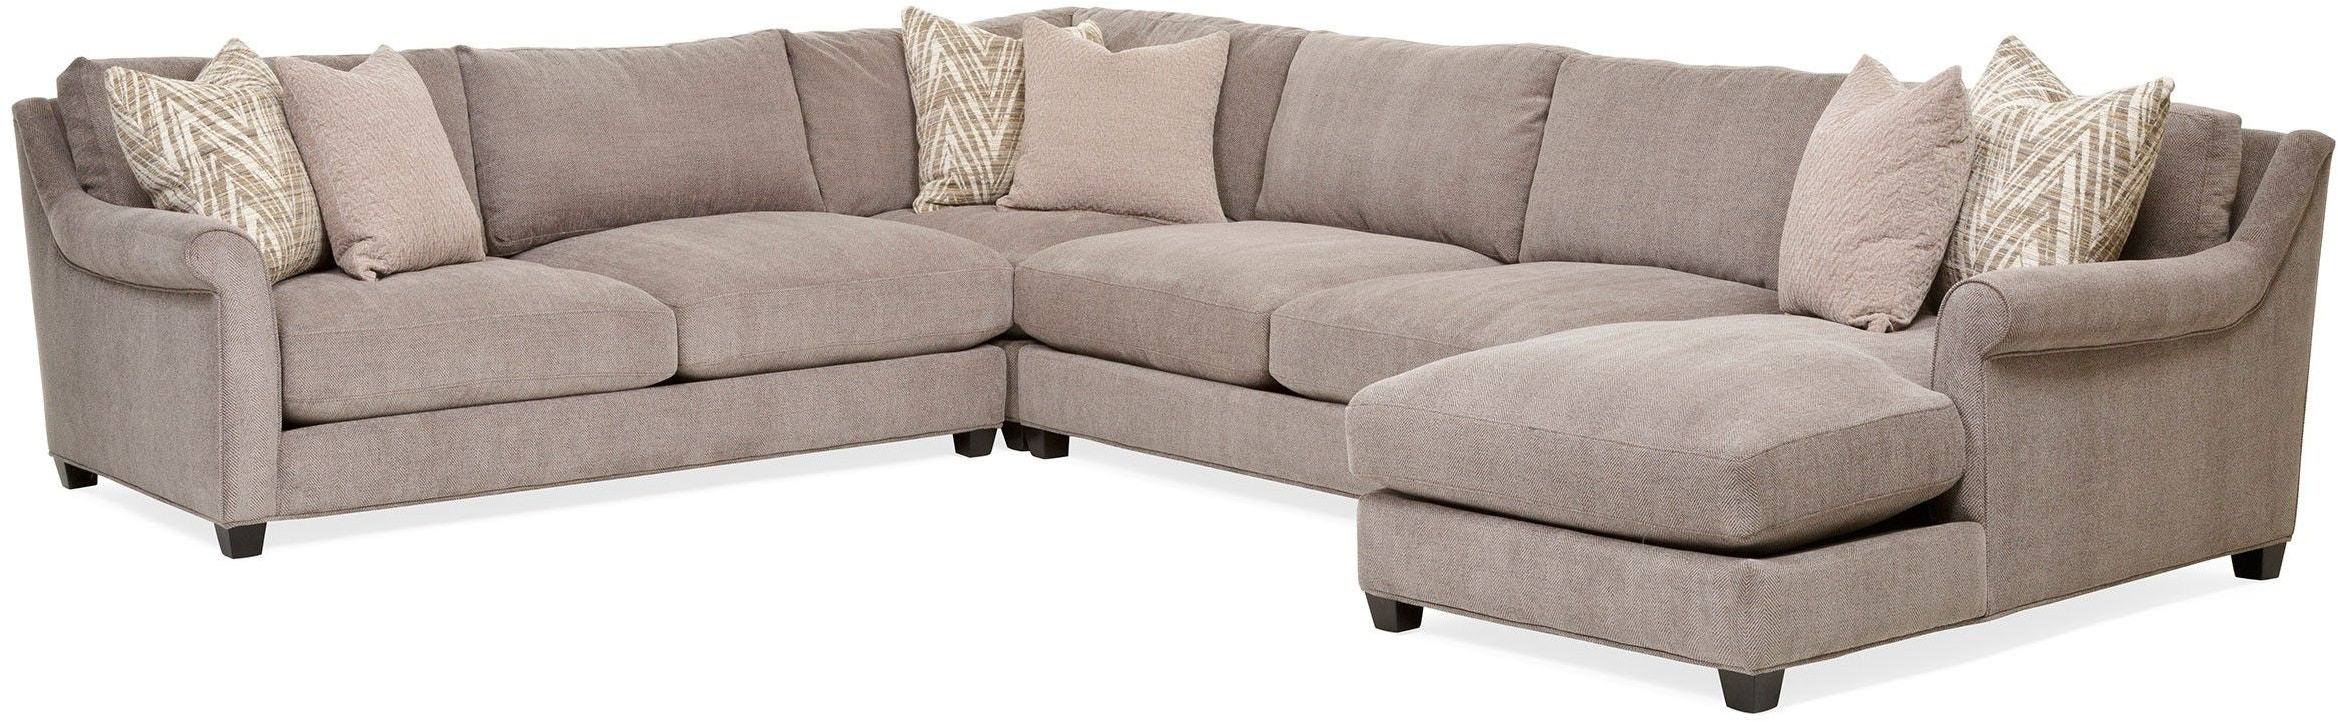 Living Room Shearson 4 Piece Sectional